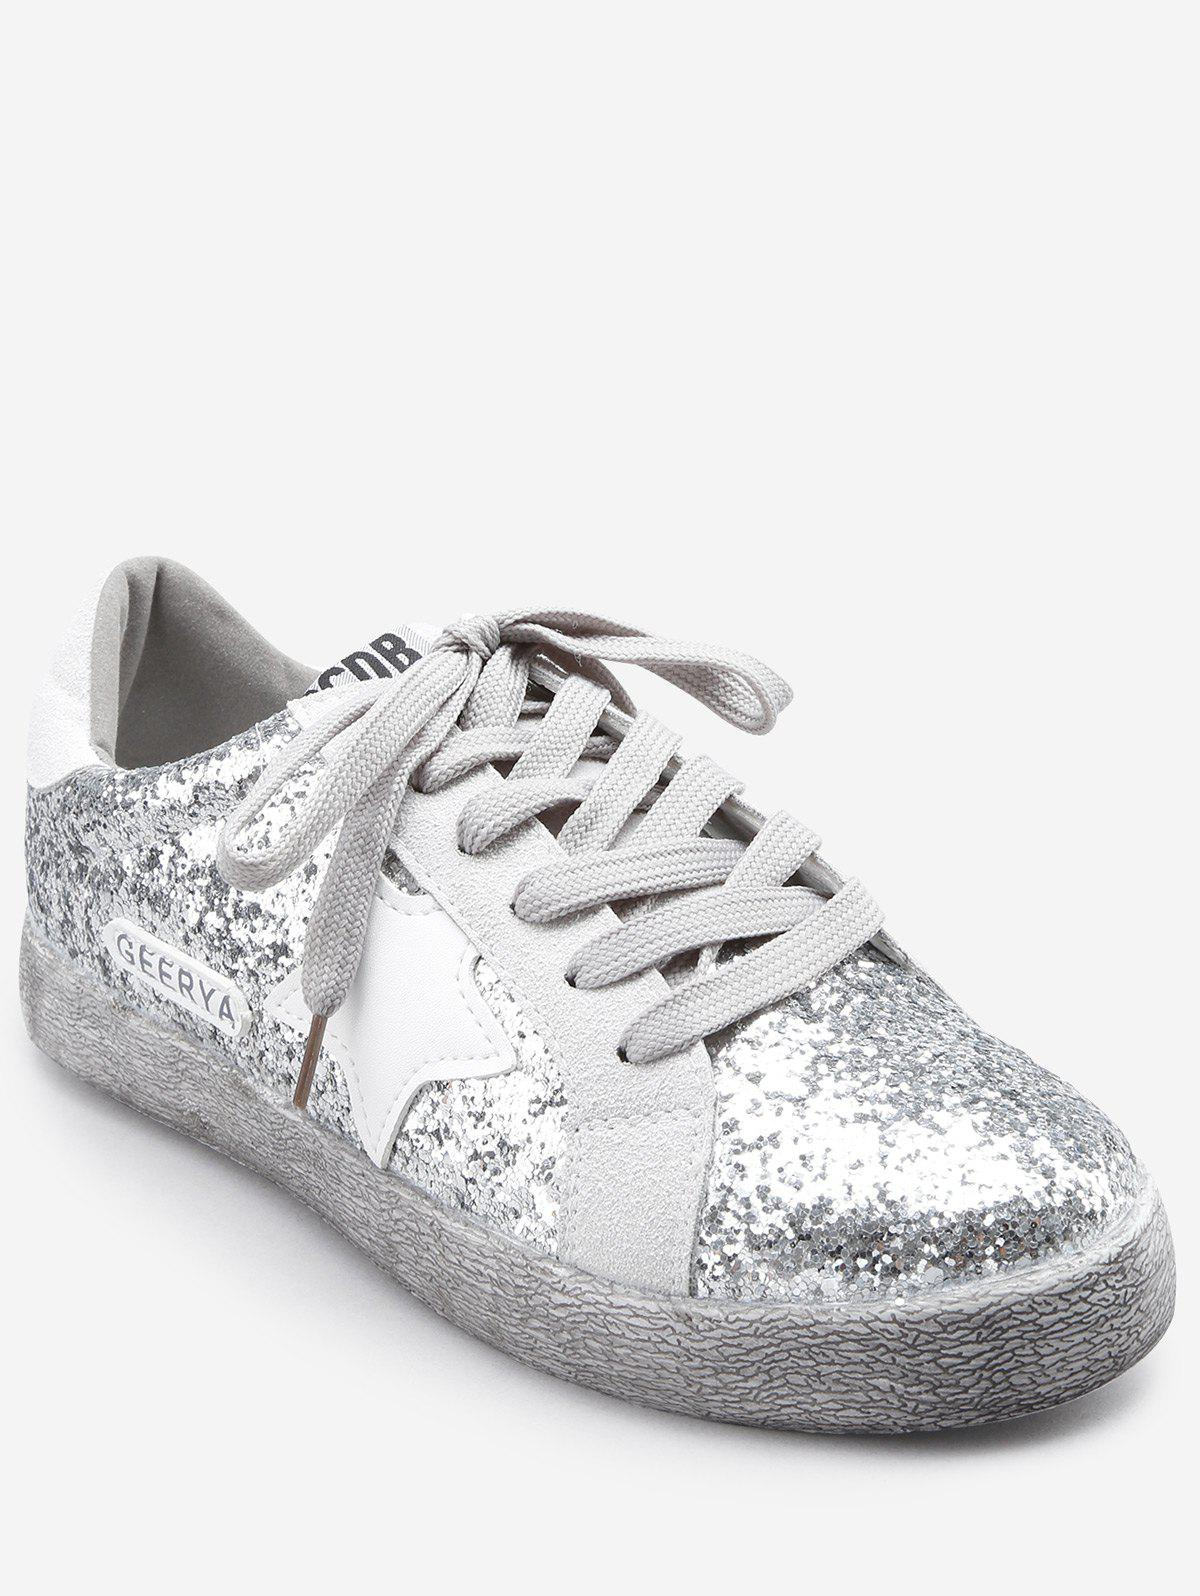 Buy Dazzling Sequins Pentagram Lace Up Sneakers